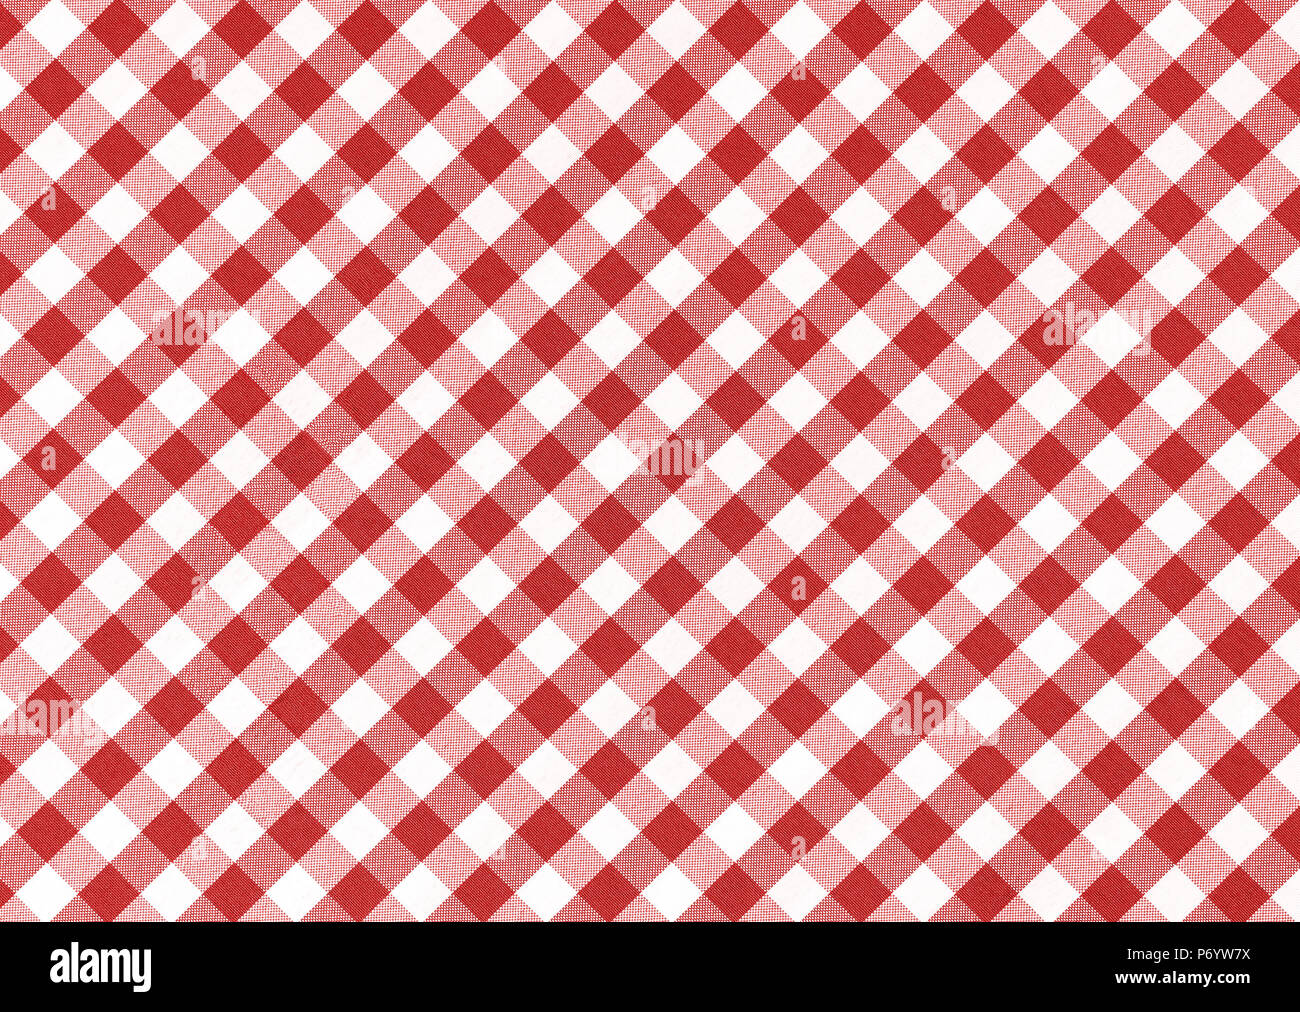 Beau Red Checkered Tablecloth Background Stock Photo: 210824878 ...